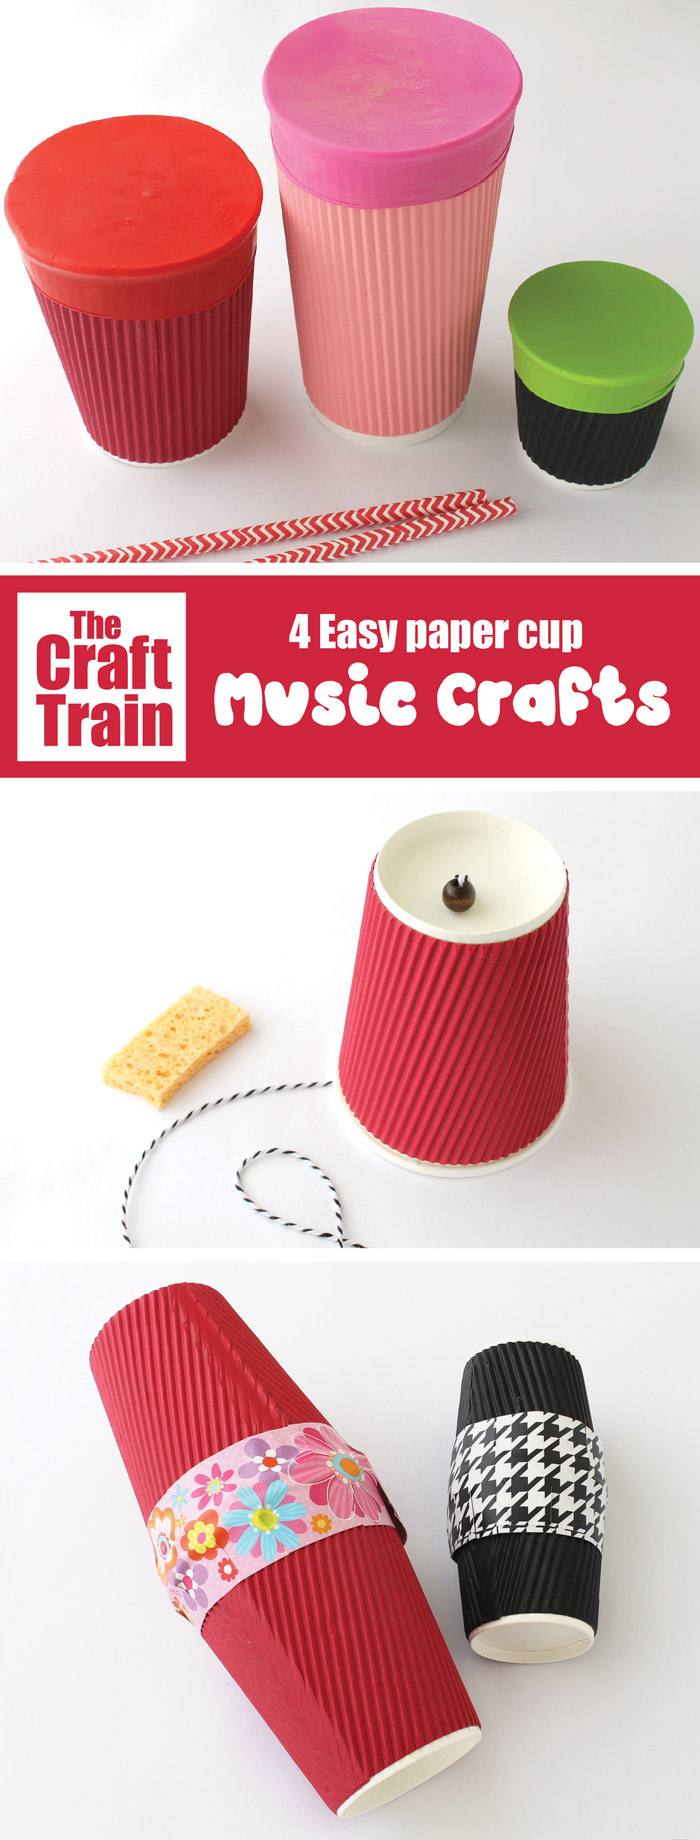 easy paper cup music crafts fpor kids